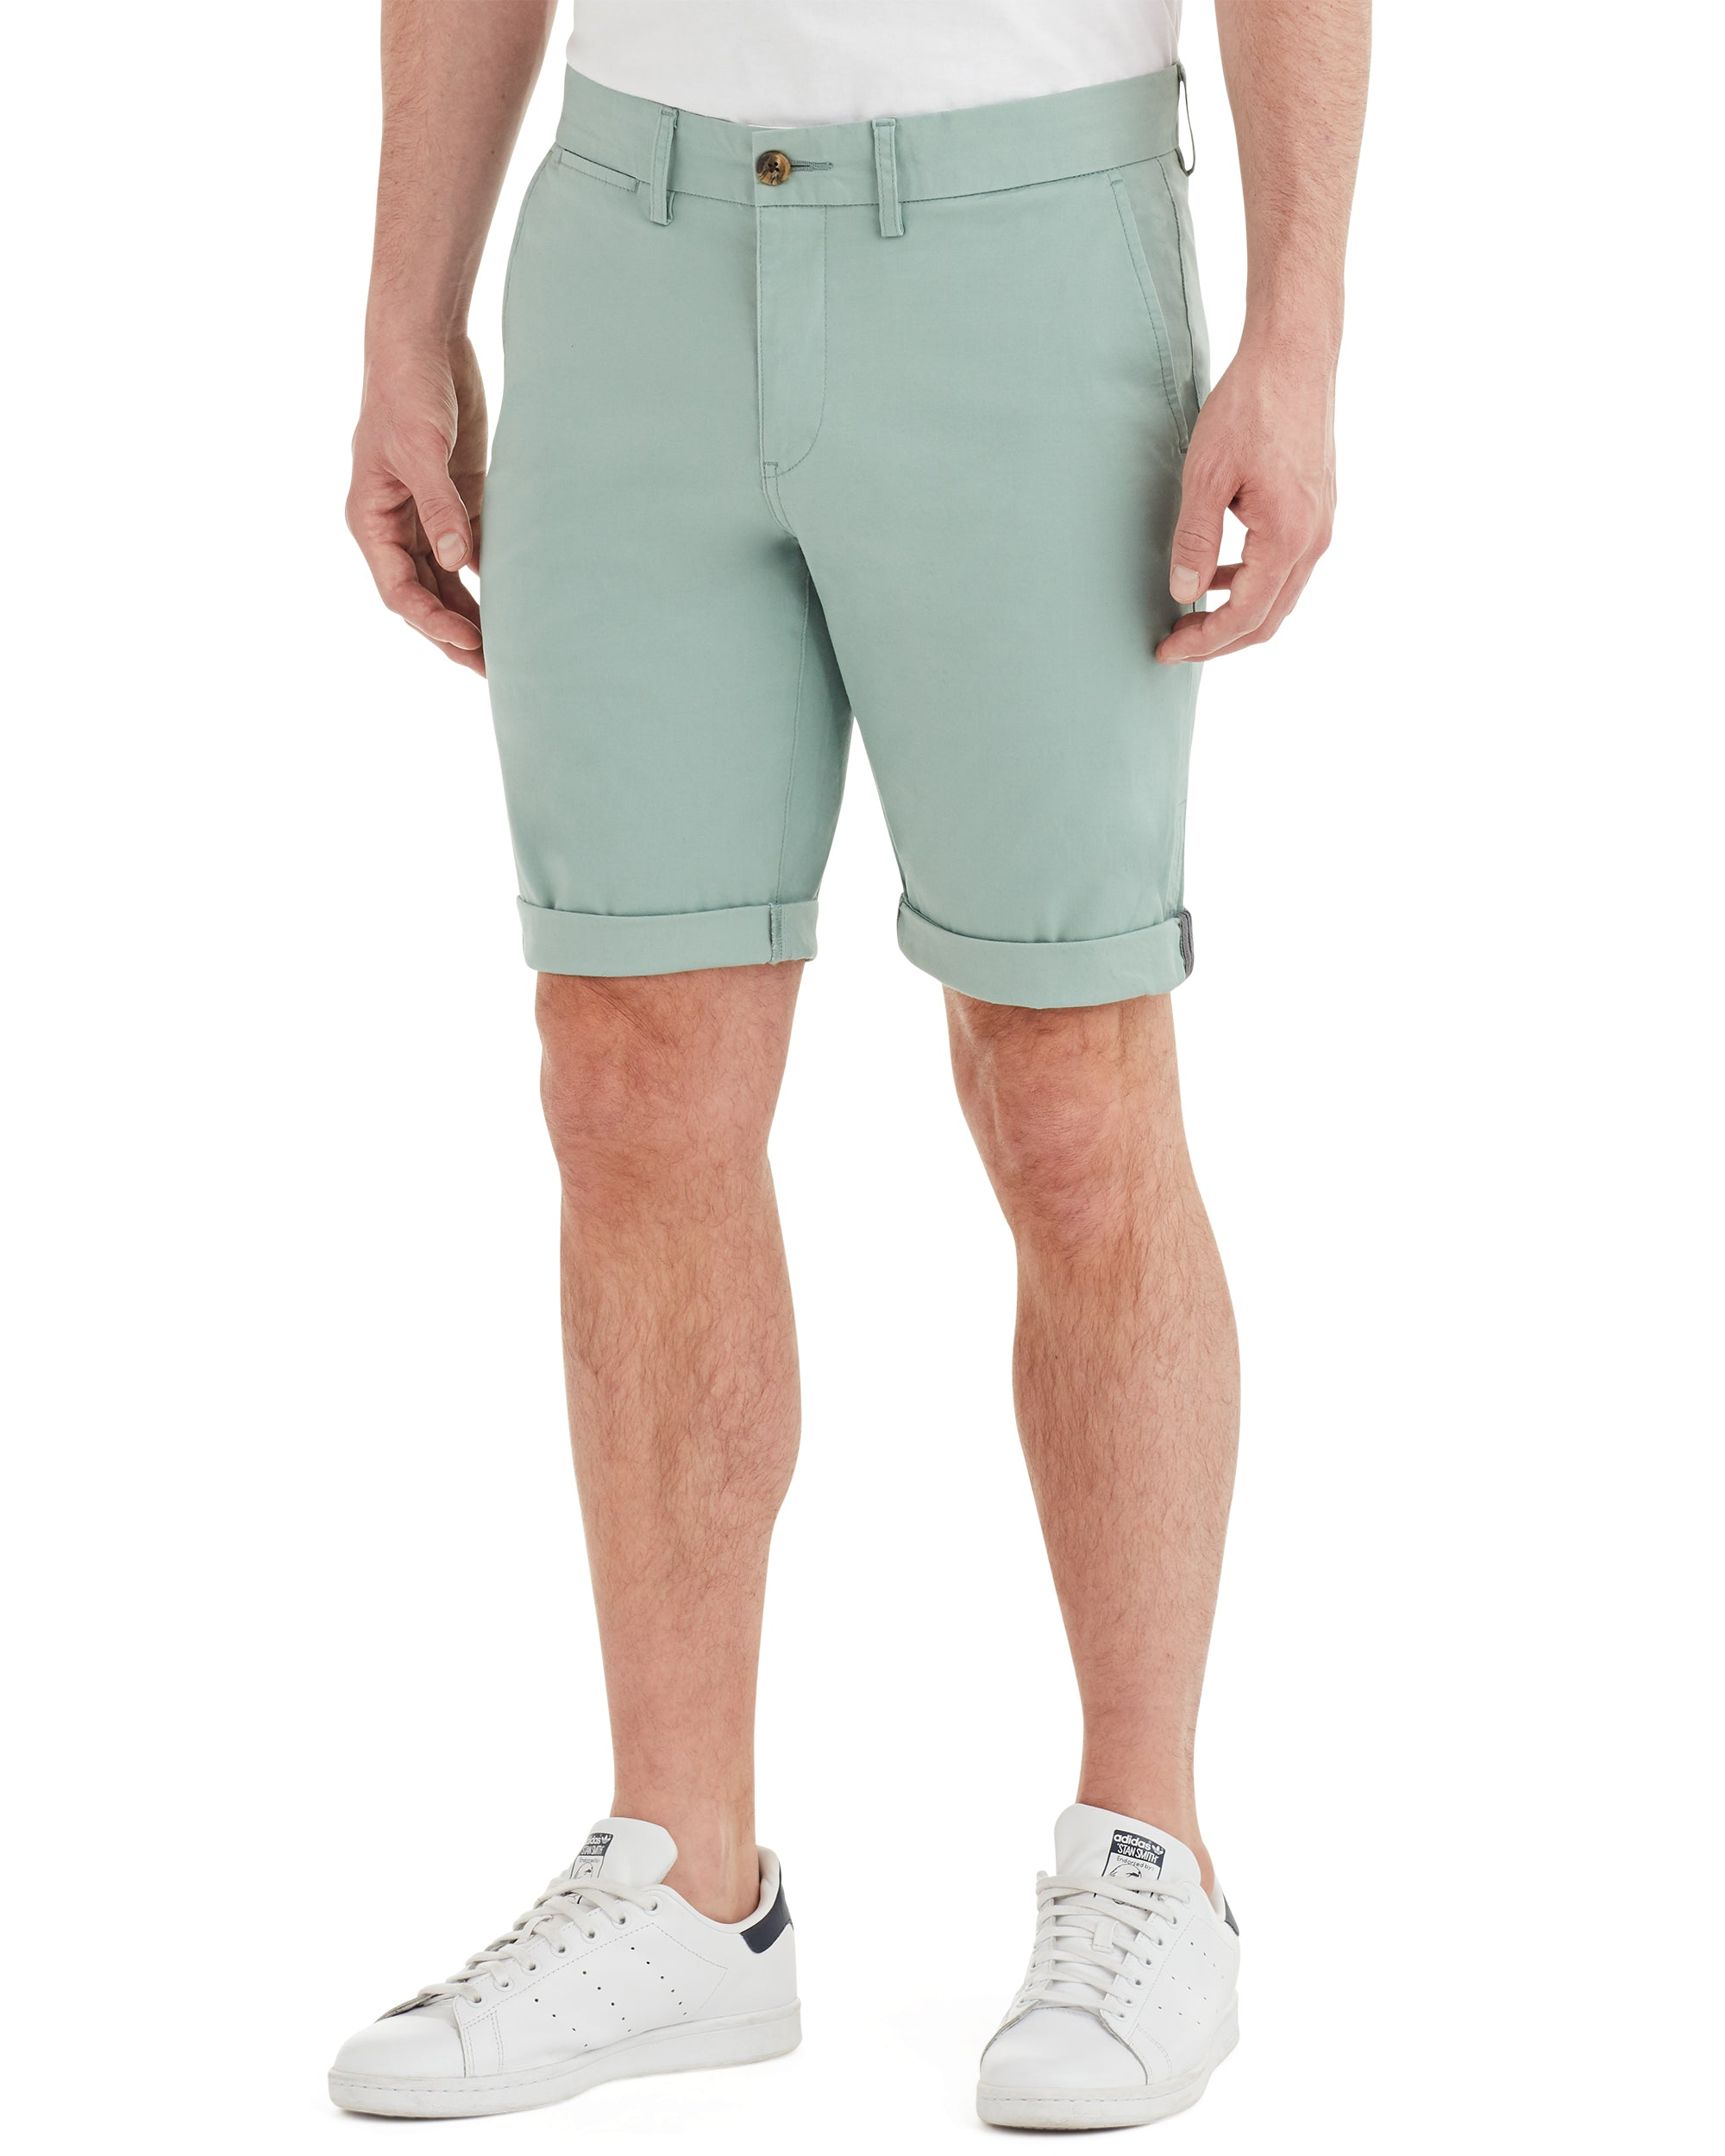 343bd0284e Slim Stretch Chino Short - Blue Surf – Ben Sherman